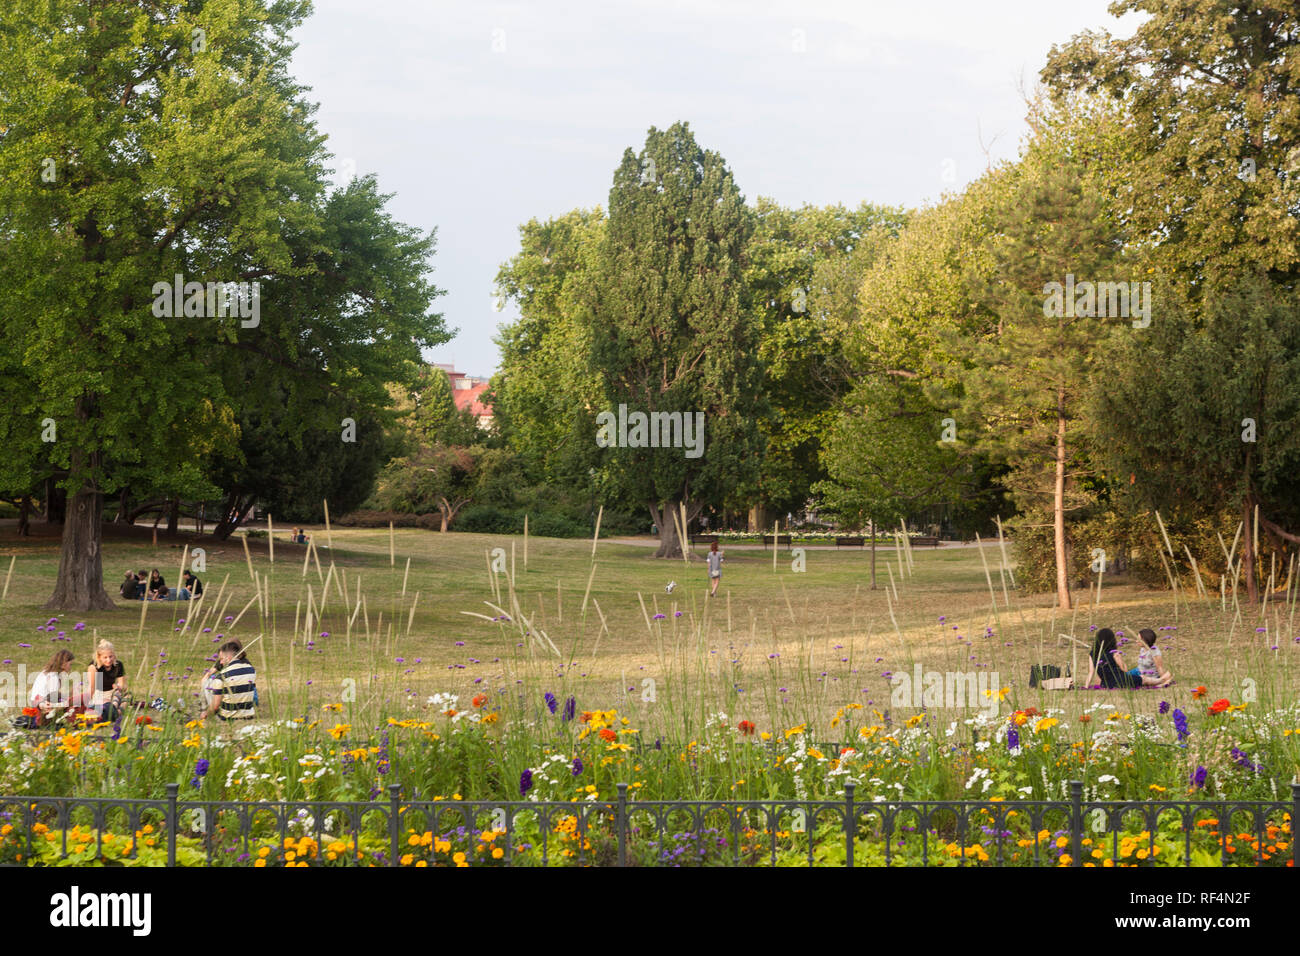 Prague, Czech Republic - July 17 2018: People enjoying evening sun on a lawn in Letna park Stock Photo